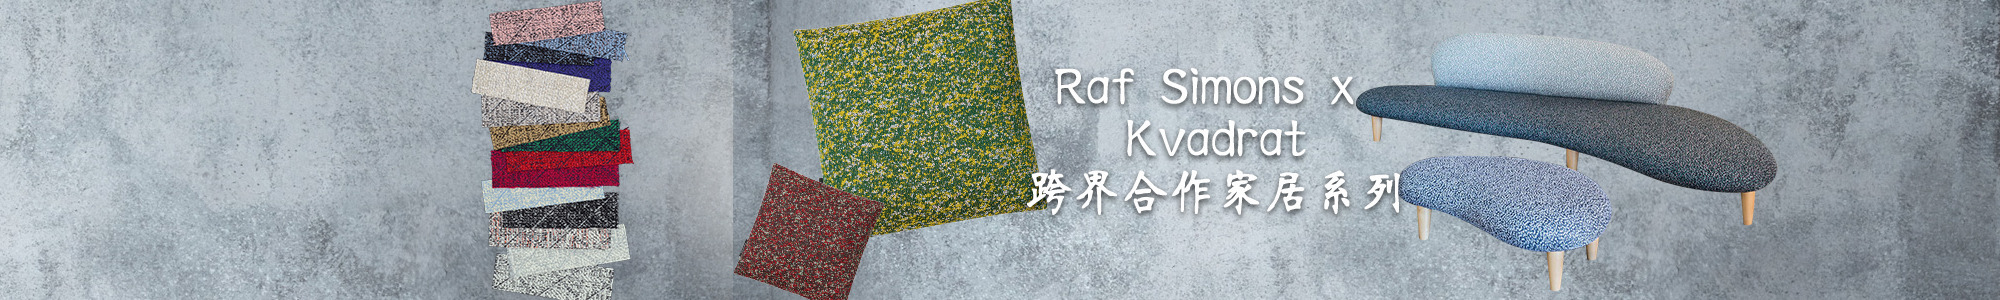 《Raf Simons x Kvadrat》跨界合作系列家居用品Lookbook